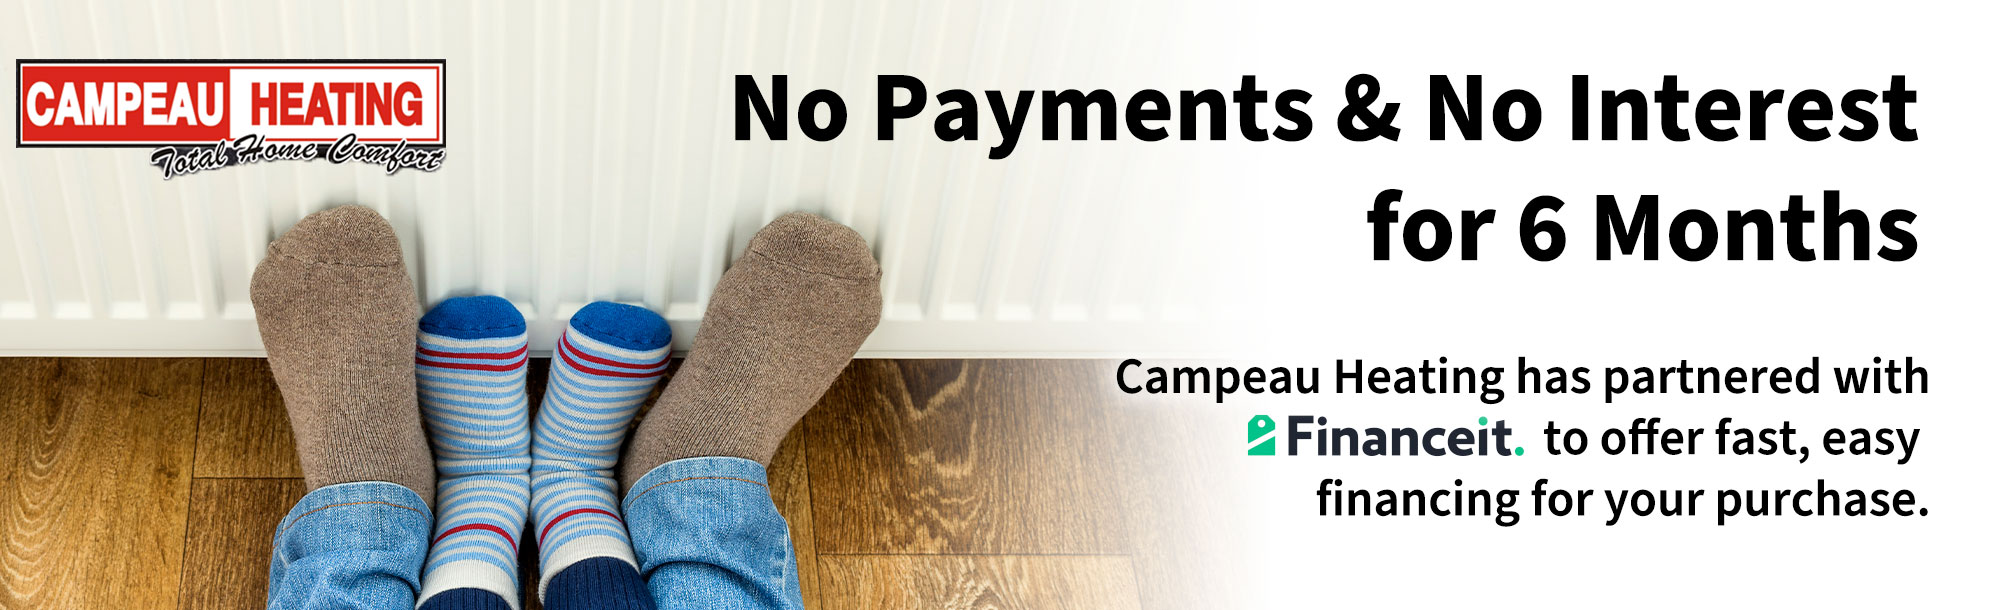 Learn more about our No Payments & No Interest for 6 Months promo!